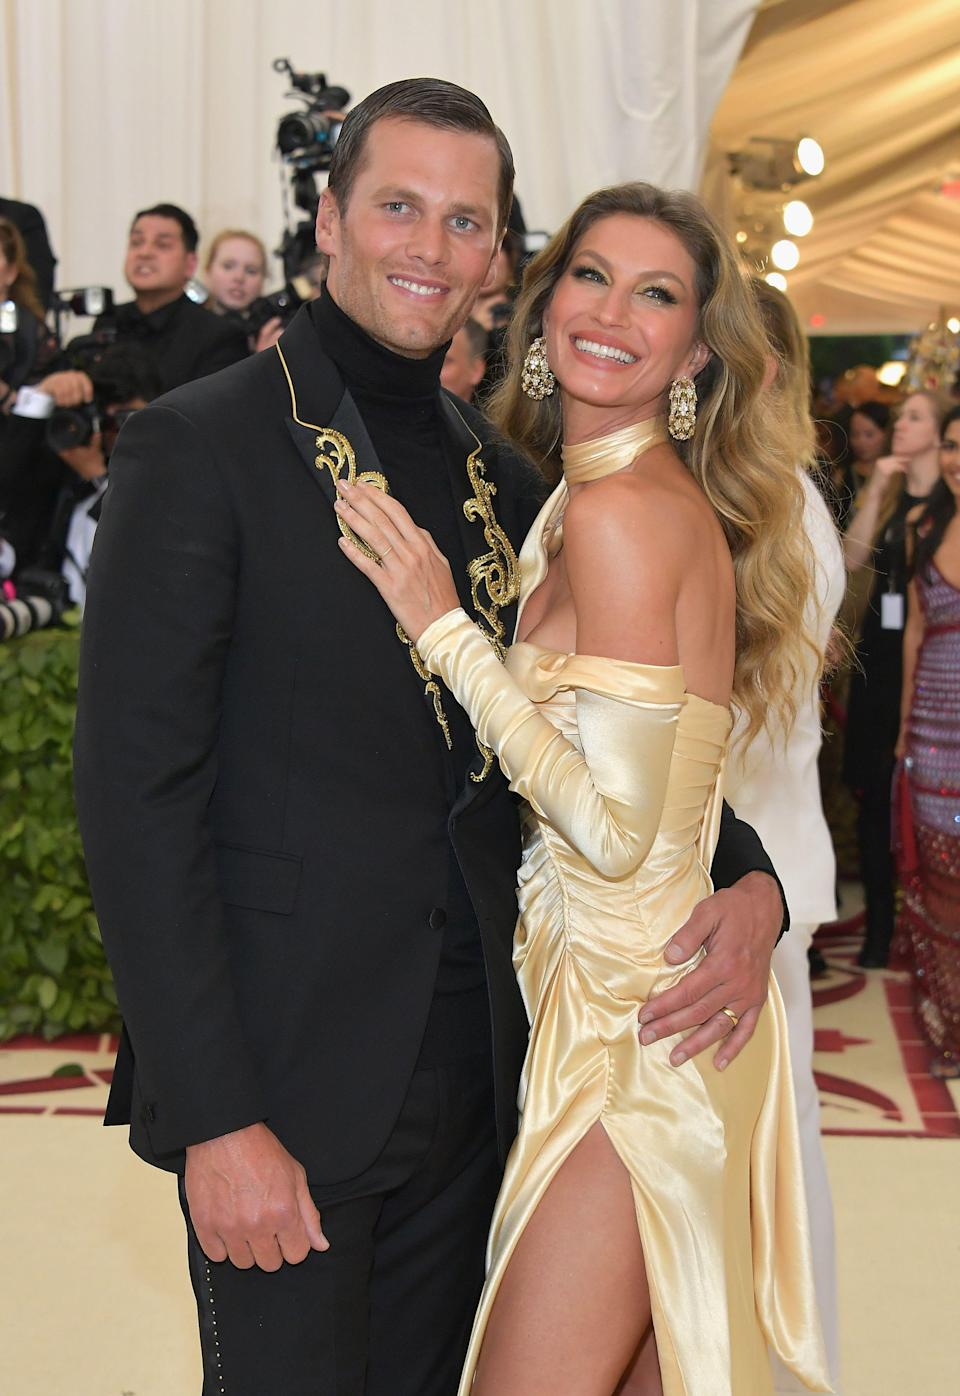 """<p>If you're thinking Gisele Bundchen and Tom Brady are one of those couples that have ah-mazing bodies, yet swear they eat like, burgers and crap? Yeah, no. Think again. The genetically gifted couple's former personal chef, <a rel=""""nofollow noopener"""" href=""""http://www.boston.com/sports/football/patriots/2016/01/04/meet-the-chef-who-decides-what-tom-brady-eats-and-what-definitely-doesn/gERAd0pkpmuELDZztIA56K/story.html"""" target=""""_blank"""" data-ylk=""""slk:Allen Campbell, opened up about what the couple actually eats"""" class=""""link rapid-noclick-resp"""">Allen Campbell, opened up about what the couple actually eats</a> in a day. And he's not sugar-coating anything-literally and figuratively. </p><p>Curious what it takes to get bodies that rocking? Check out the main staples making up the power couple's organic, 80 percent vegetable, 20 percent lean meat diet. But it might be what the duo <em>doesn't </em>eat that's most shocking.</p>"""